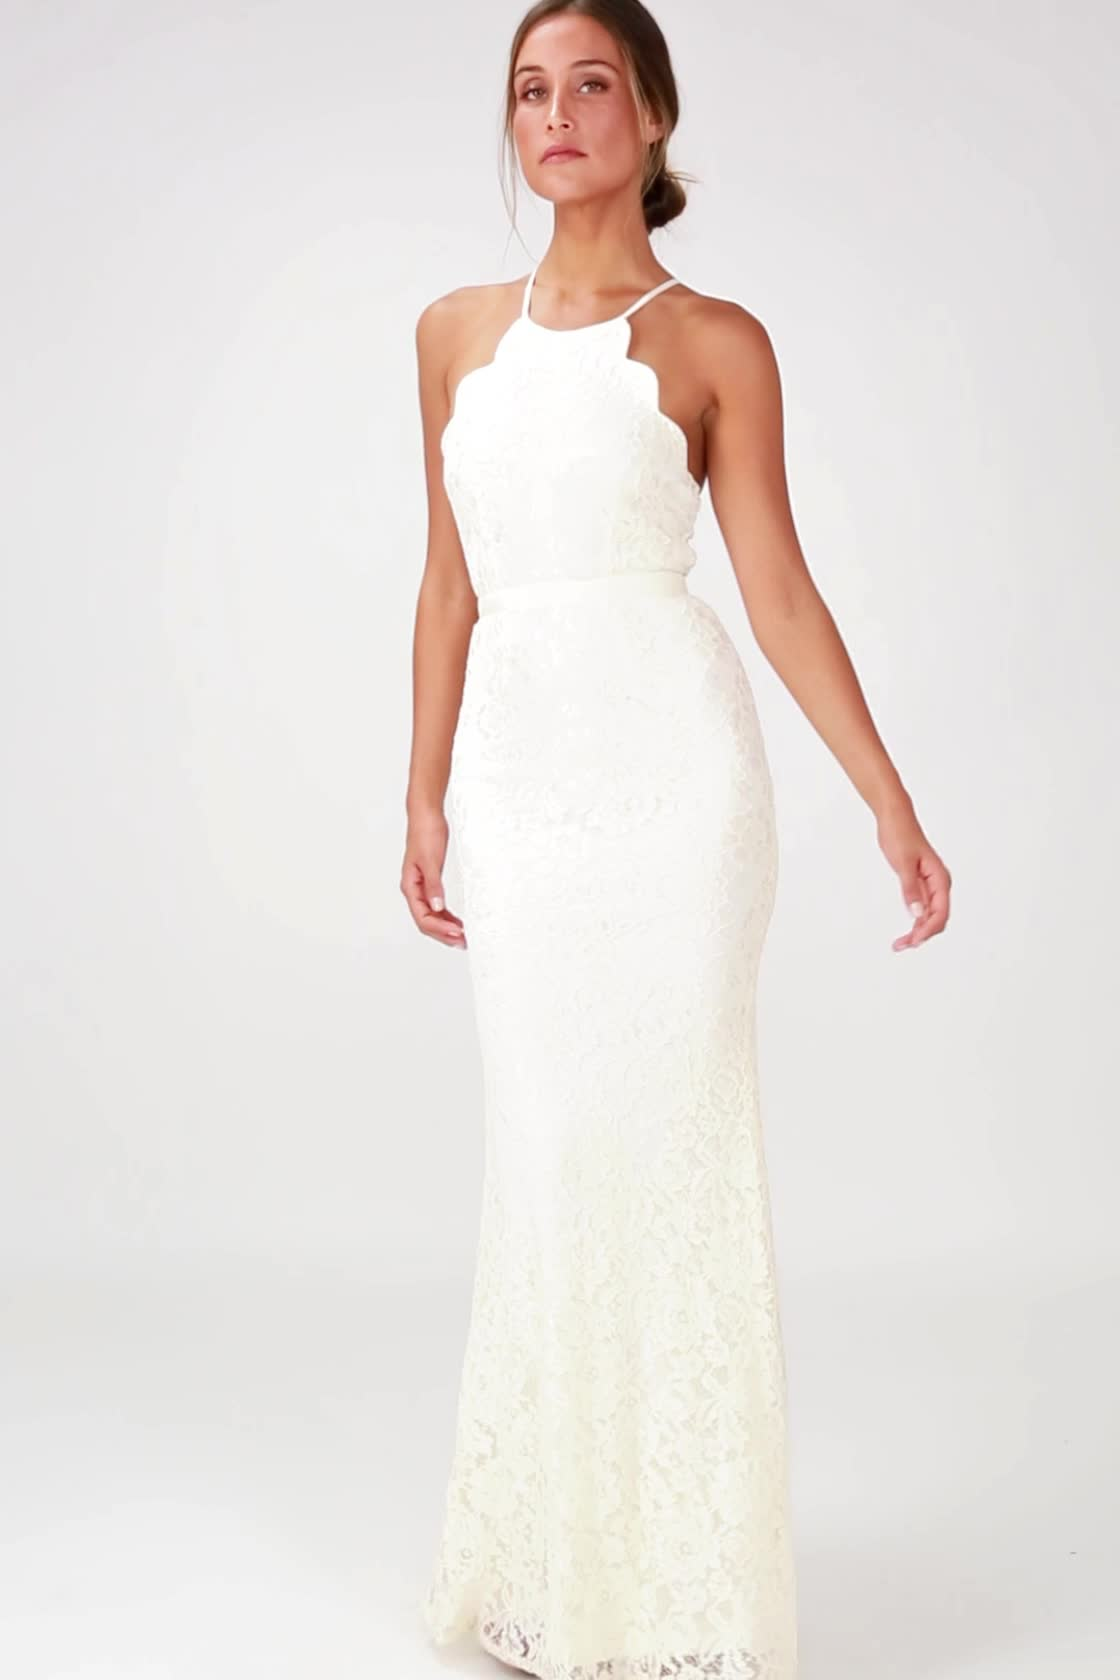 Lovely Cream Gown - Lace Dress - Maxi Dress